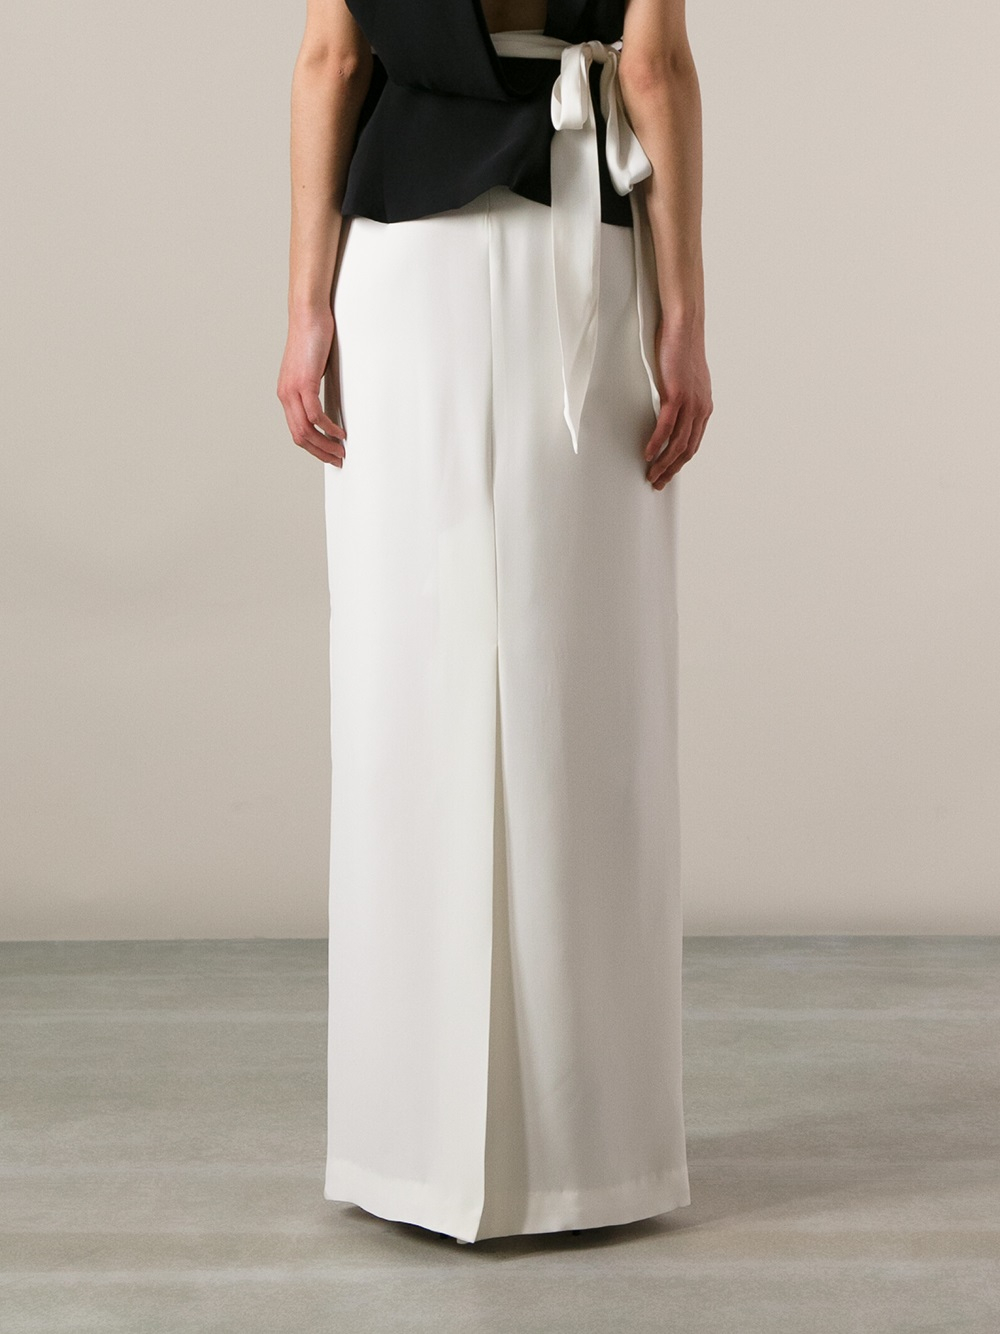 Raoul Long Pencil Skirt in White | Lyst